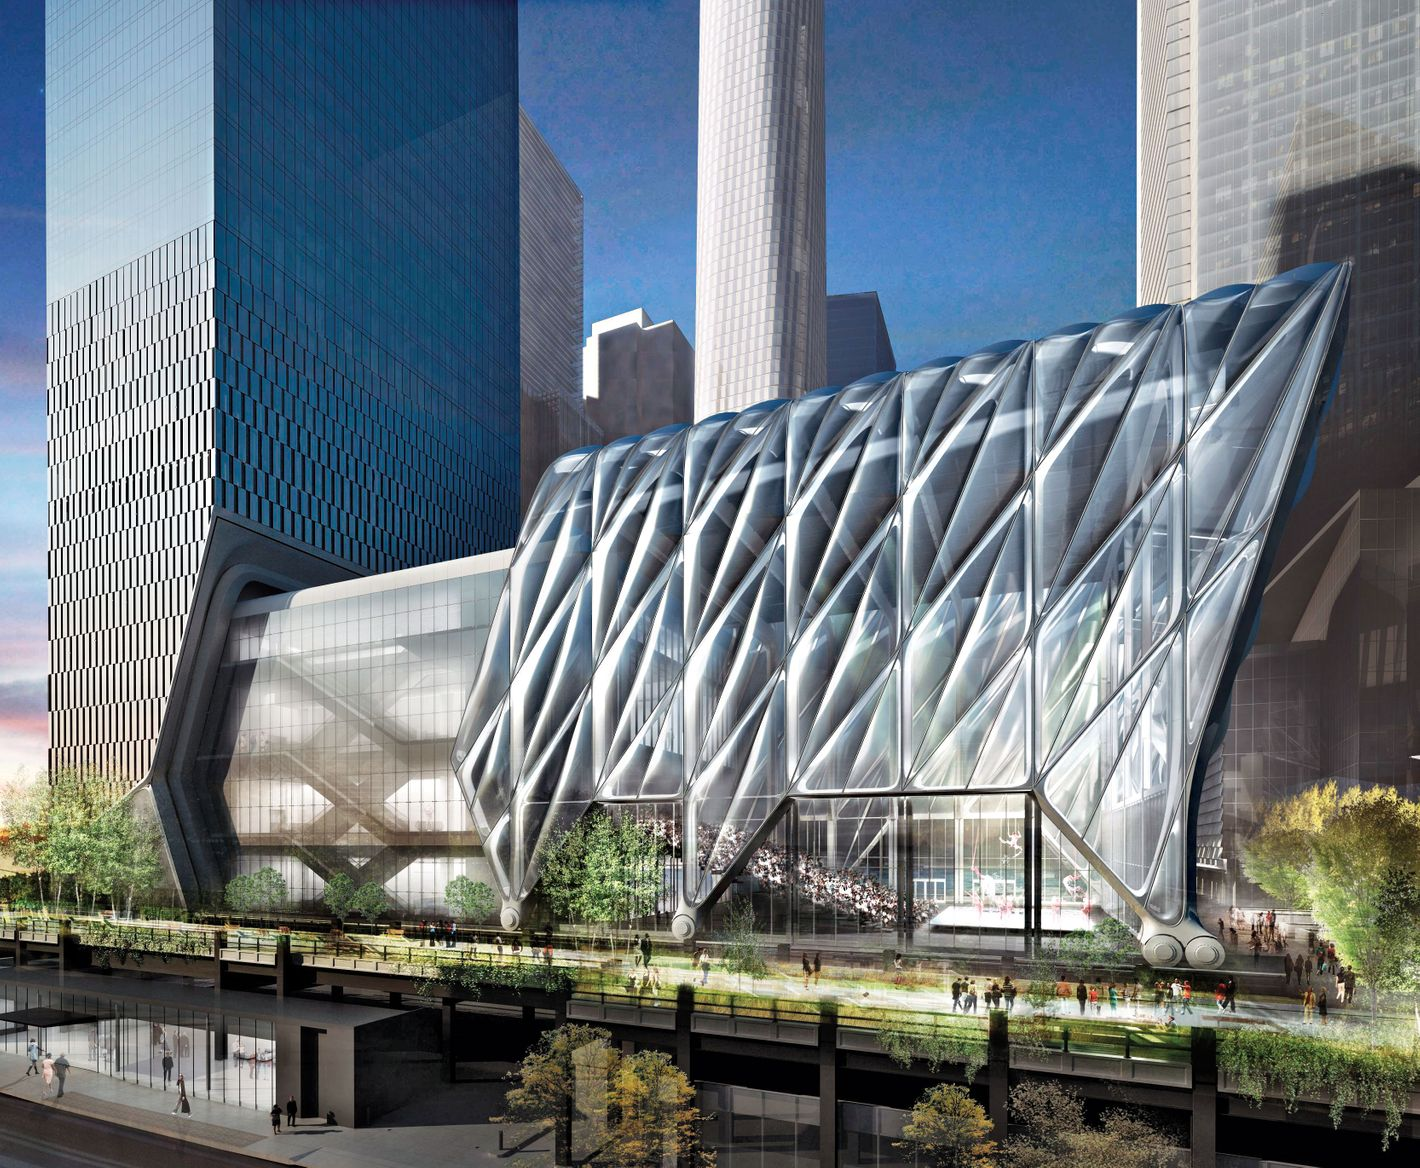 Hudson Yards Is a Billionaire's Fantasy City